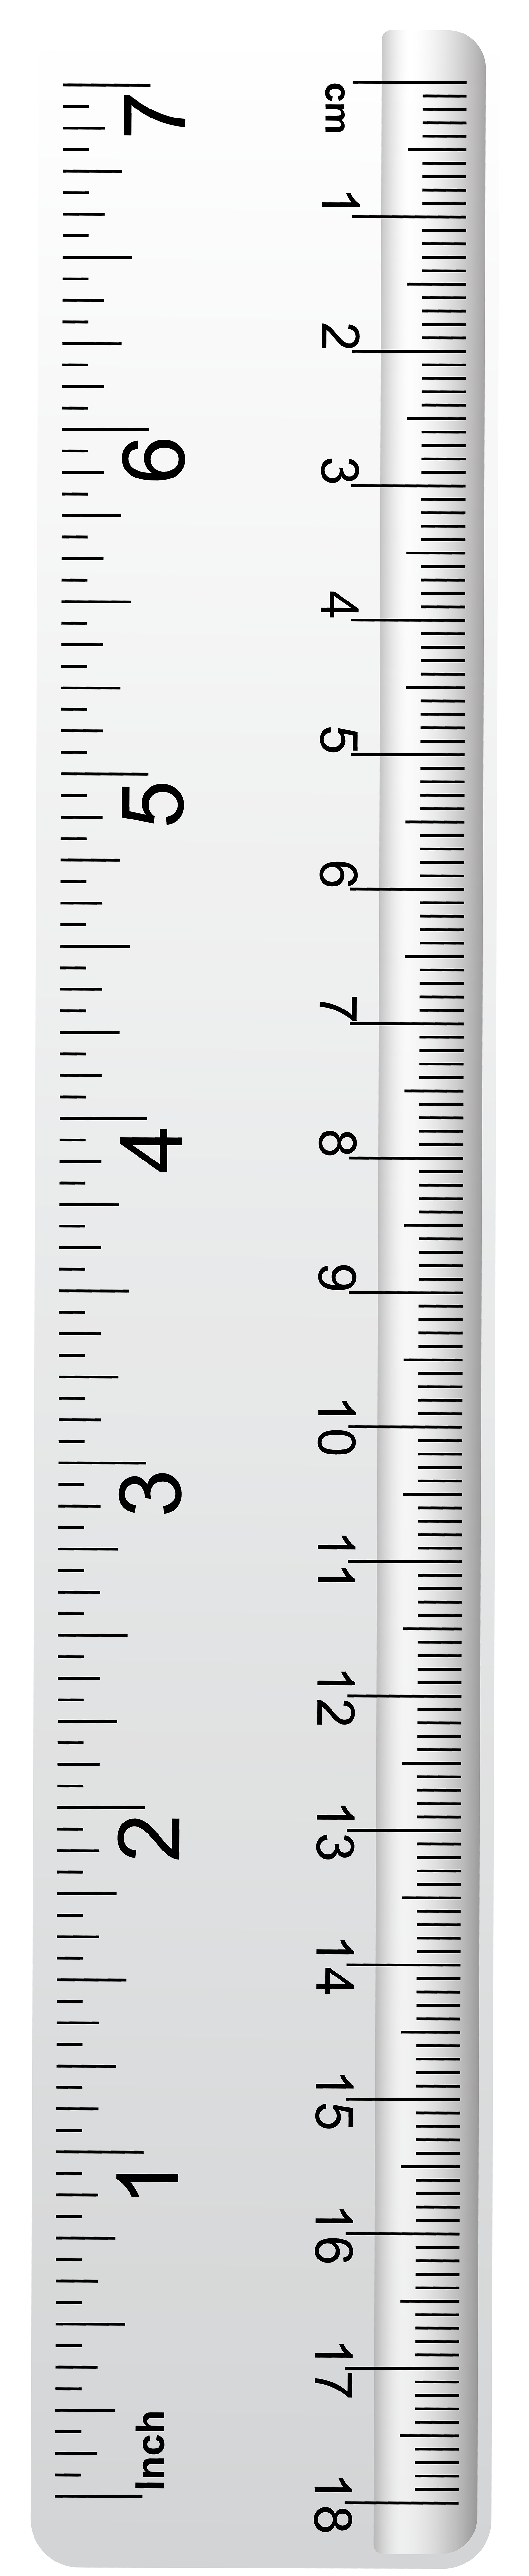 Ruler clipart. Tool free daily school